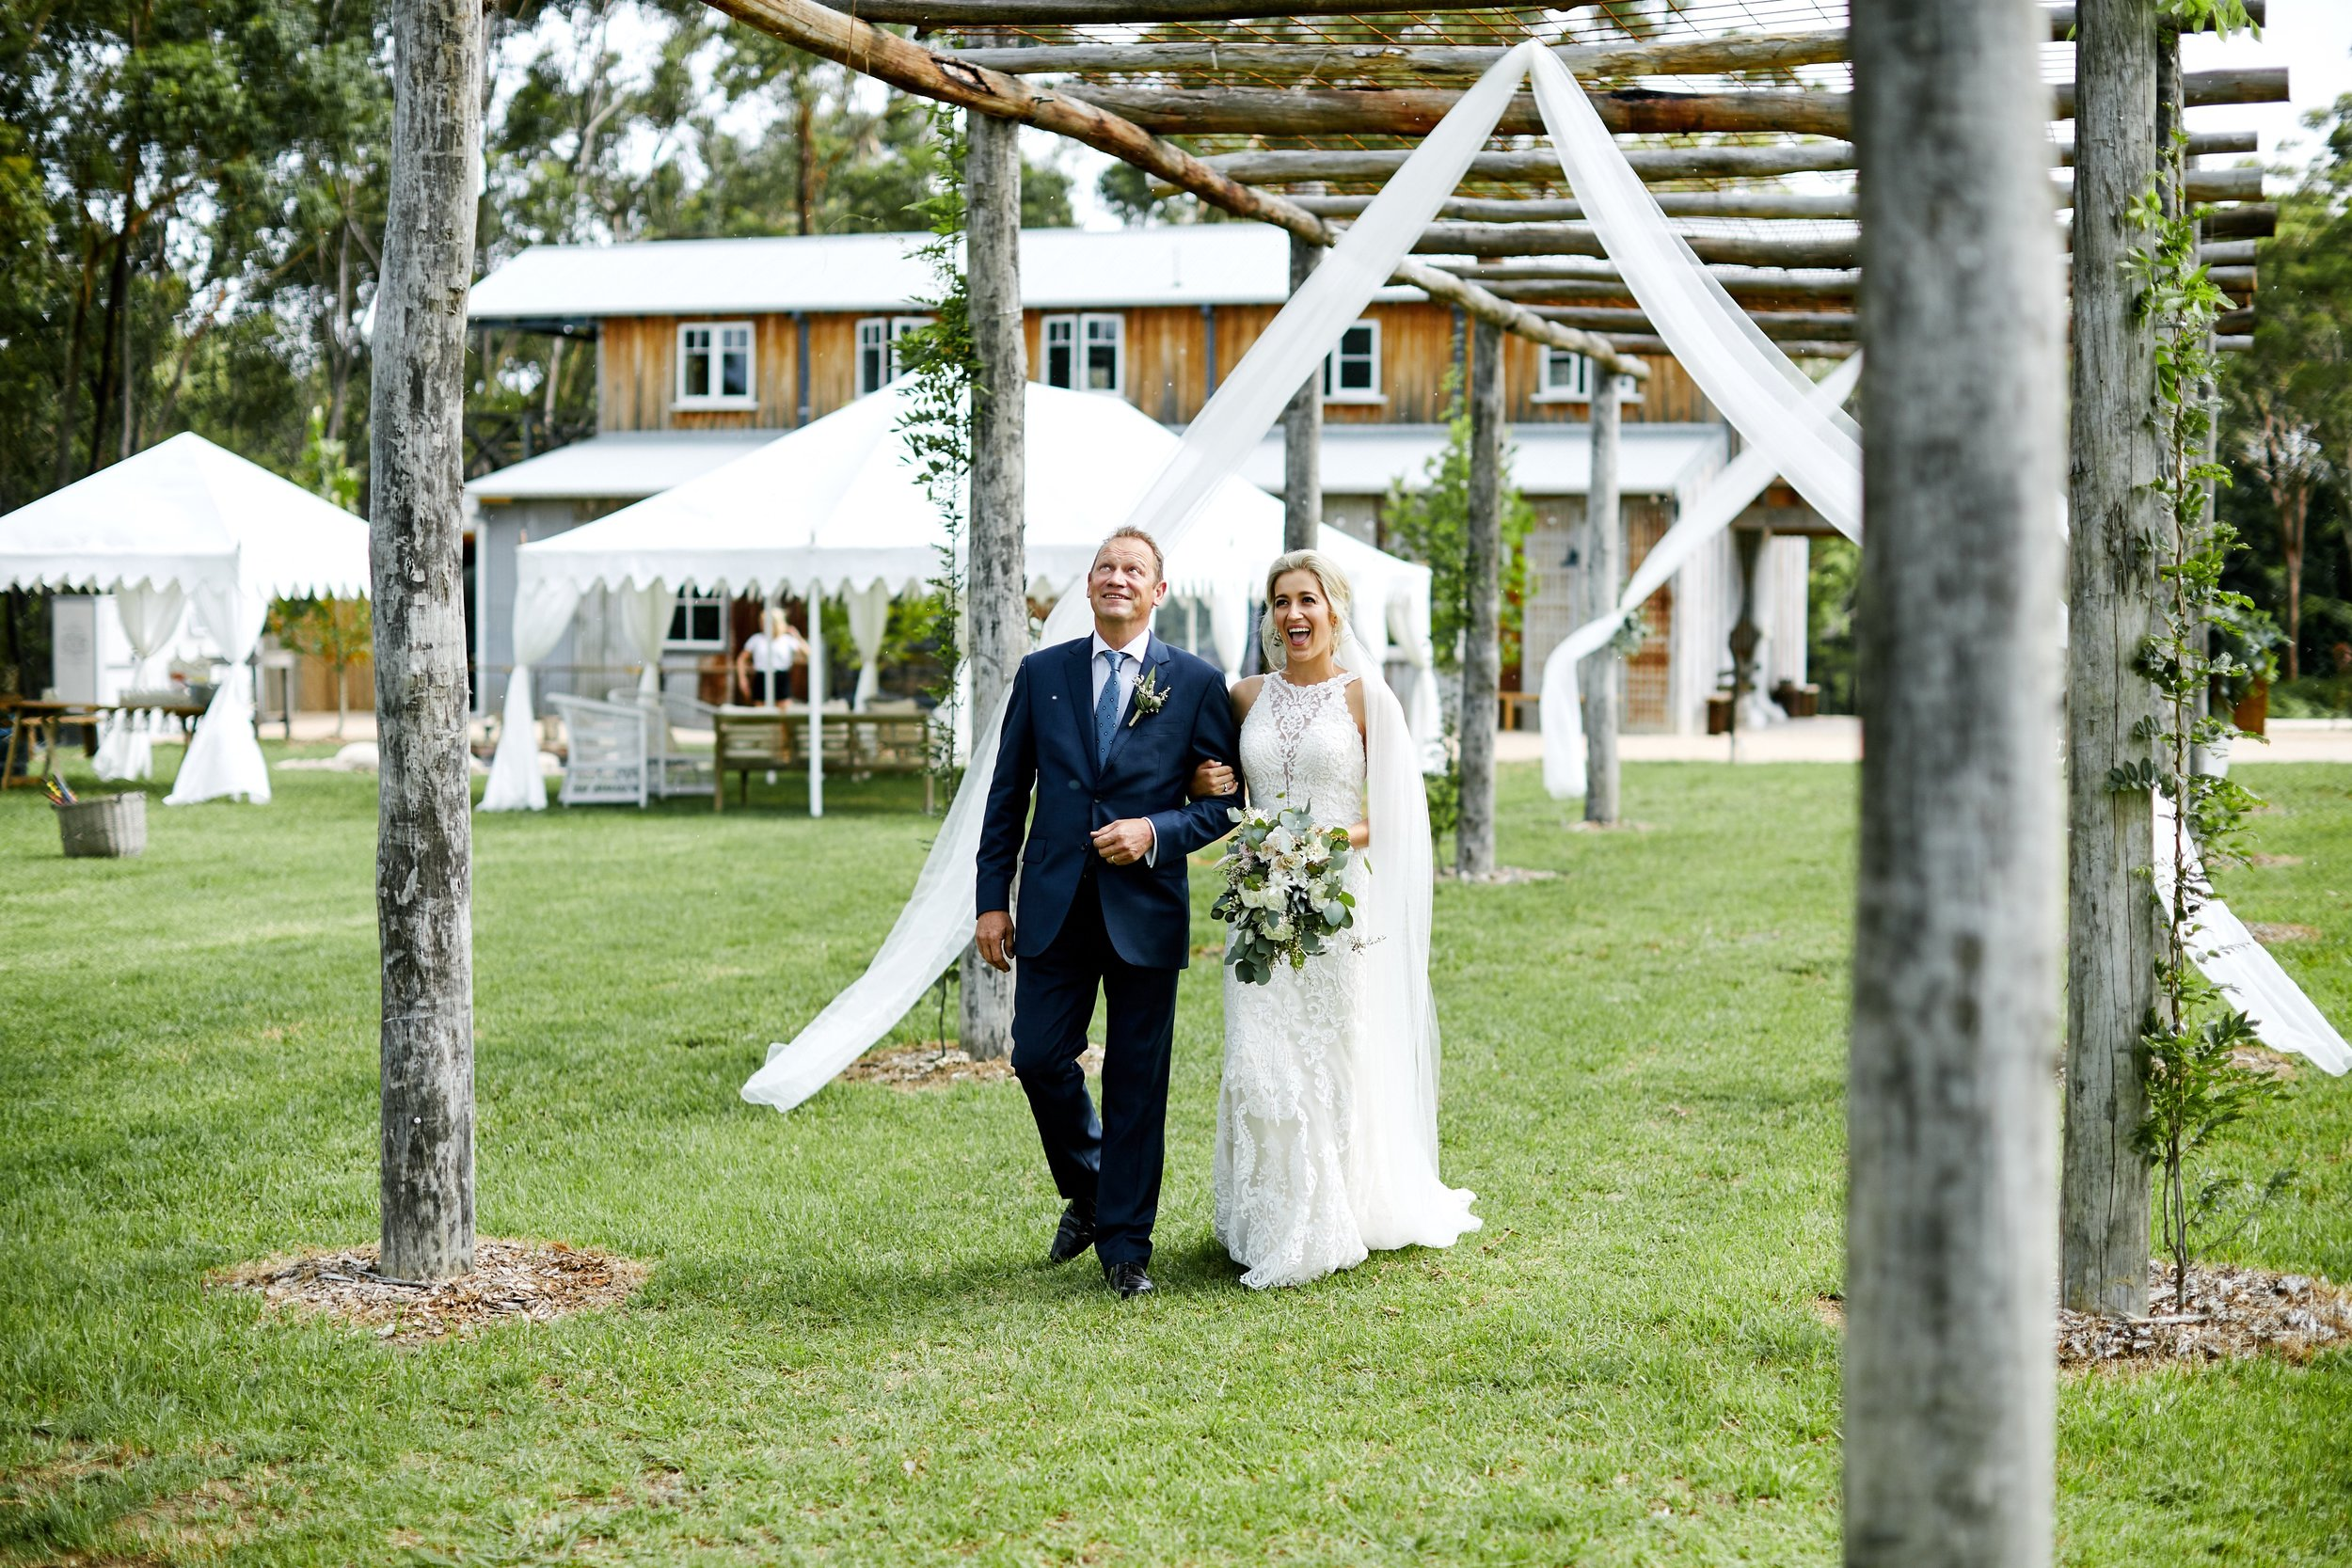 Bride and her father walking down the aisle at an outdoor wedding in NSW Central Coast Wedding venue The Stables of Somersby